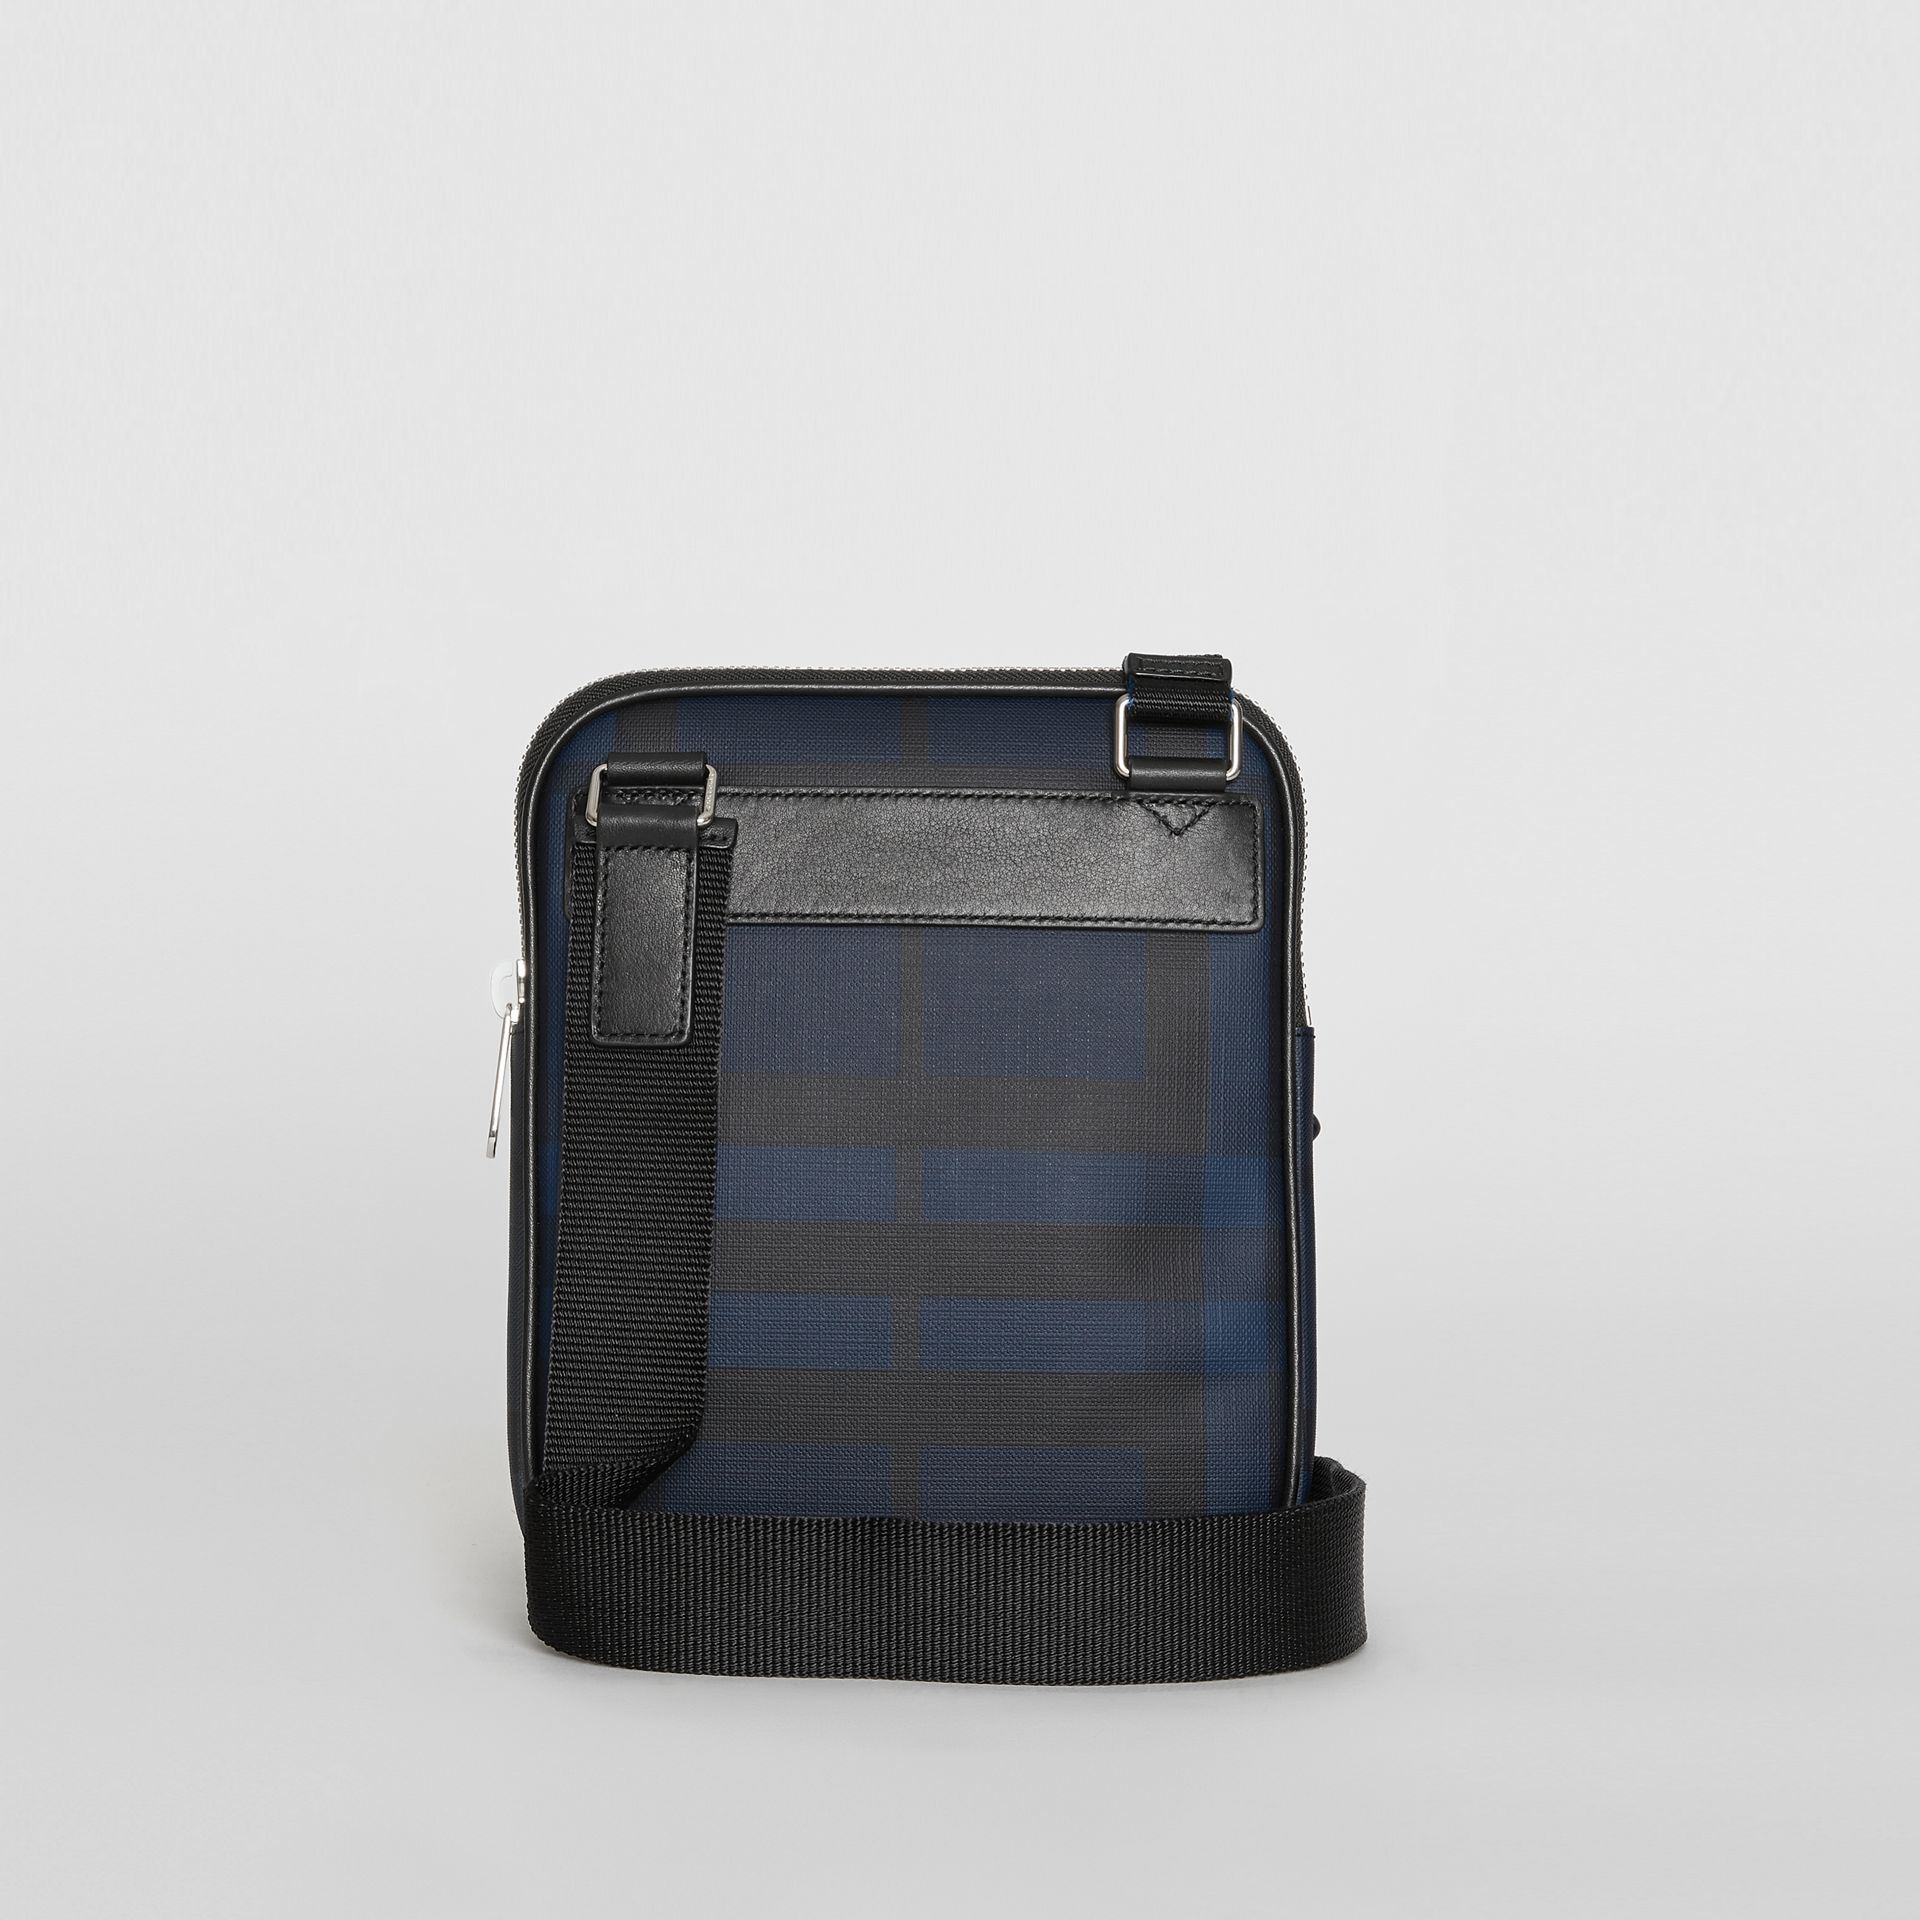 Slim London Check Crossbody Bag in Navy/black - Men | Burberry Hong Kong S.A.R - gallery image 7